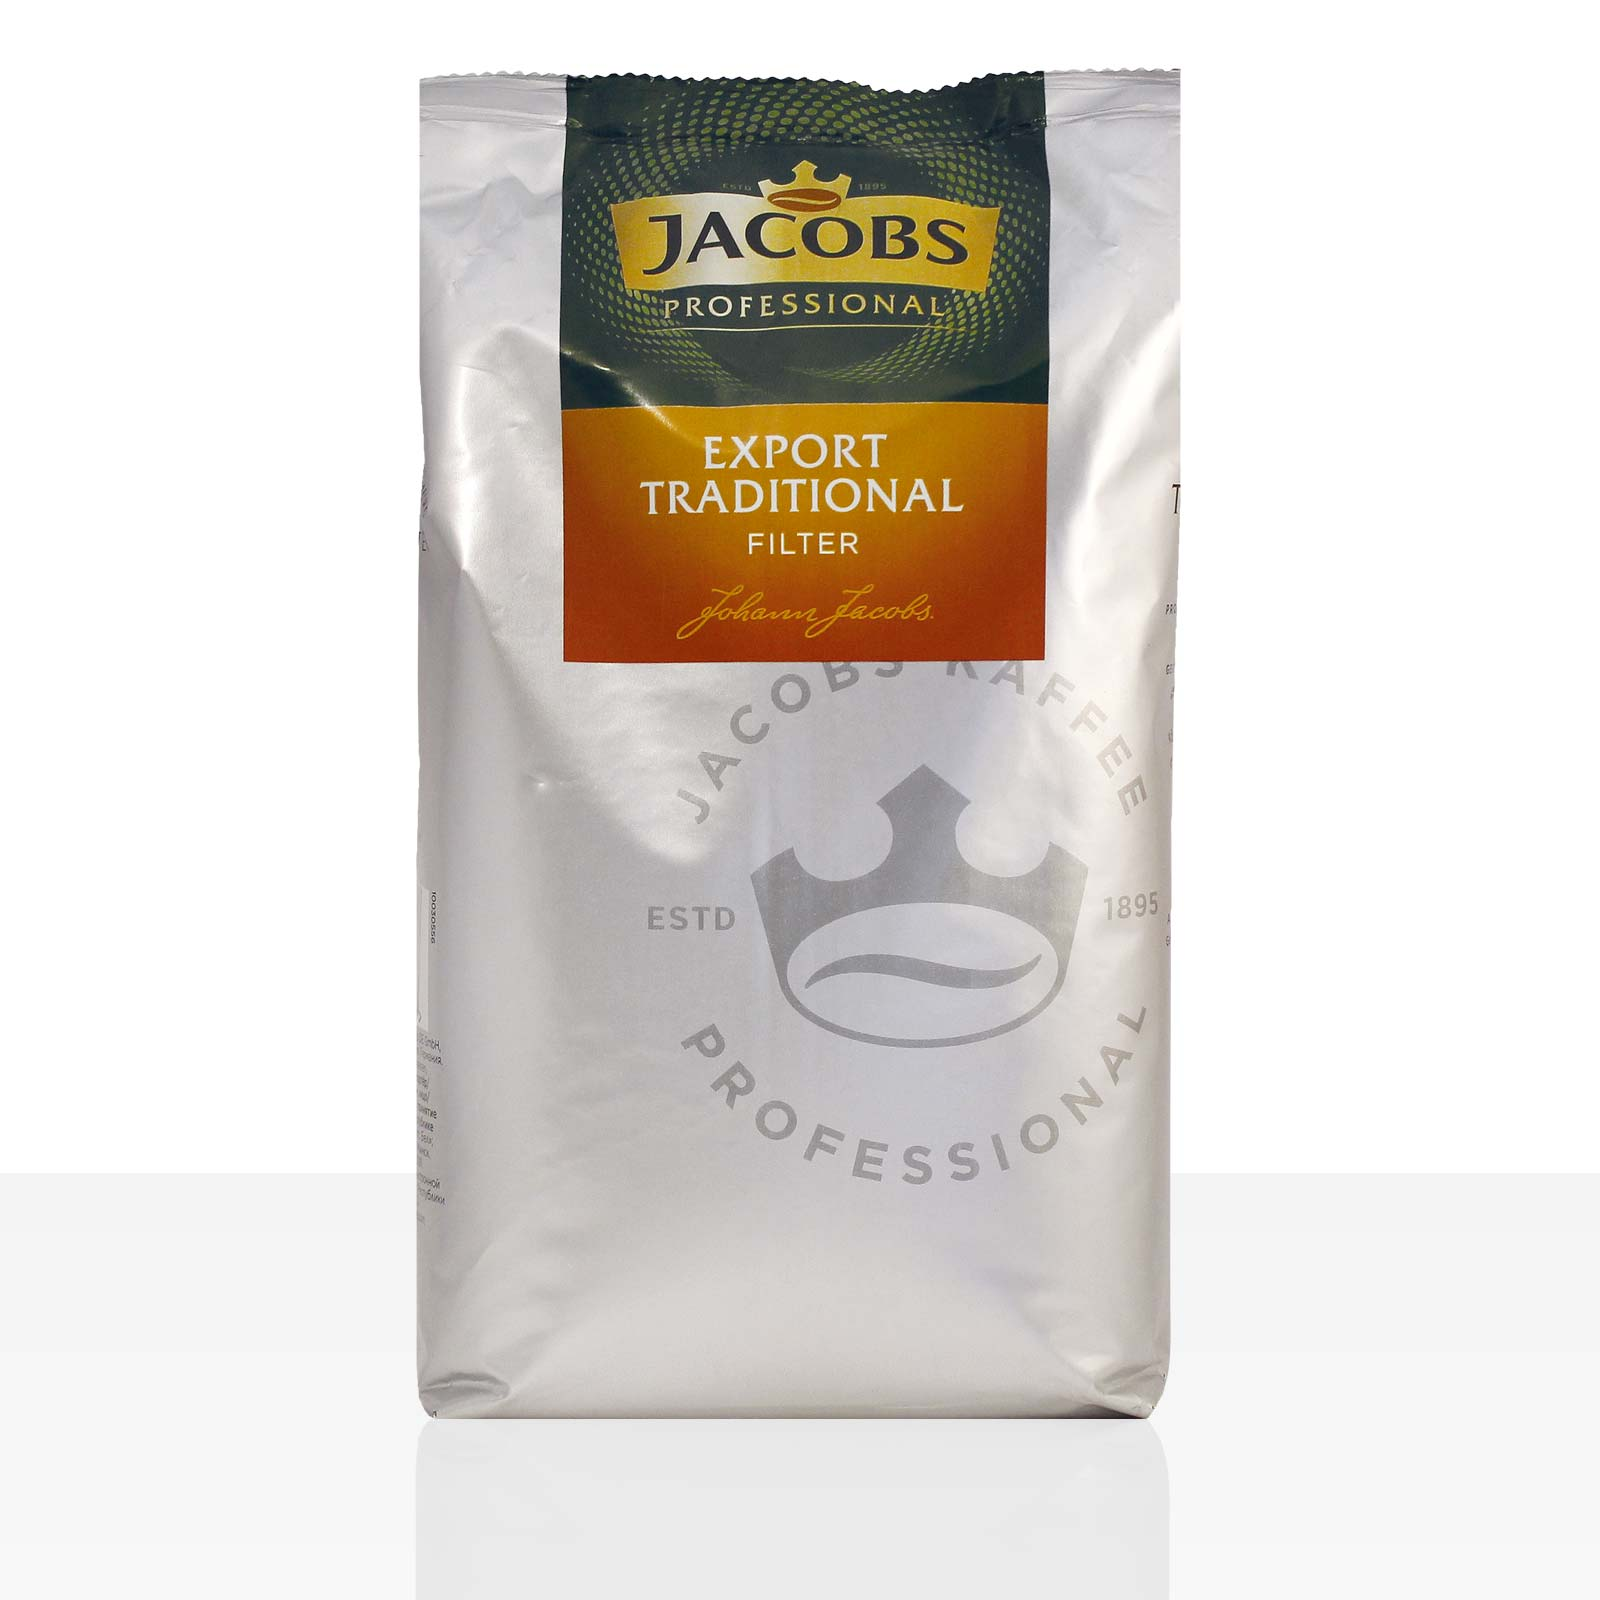 Jacobs Filterkaffee Export Traditional - 1kg Kaffee gemahlen